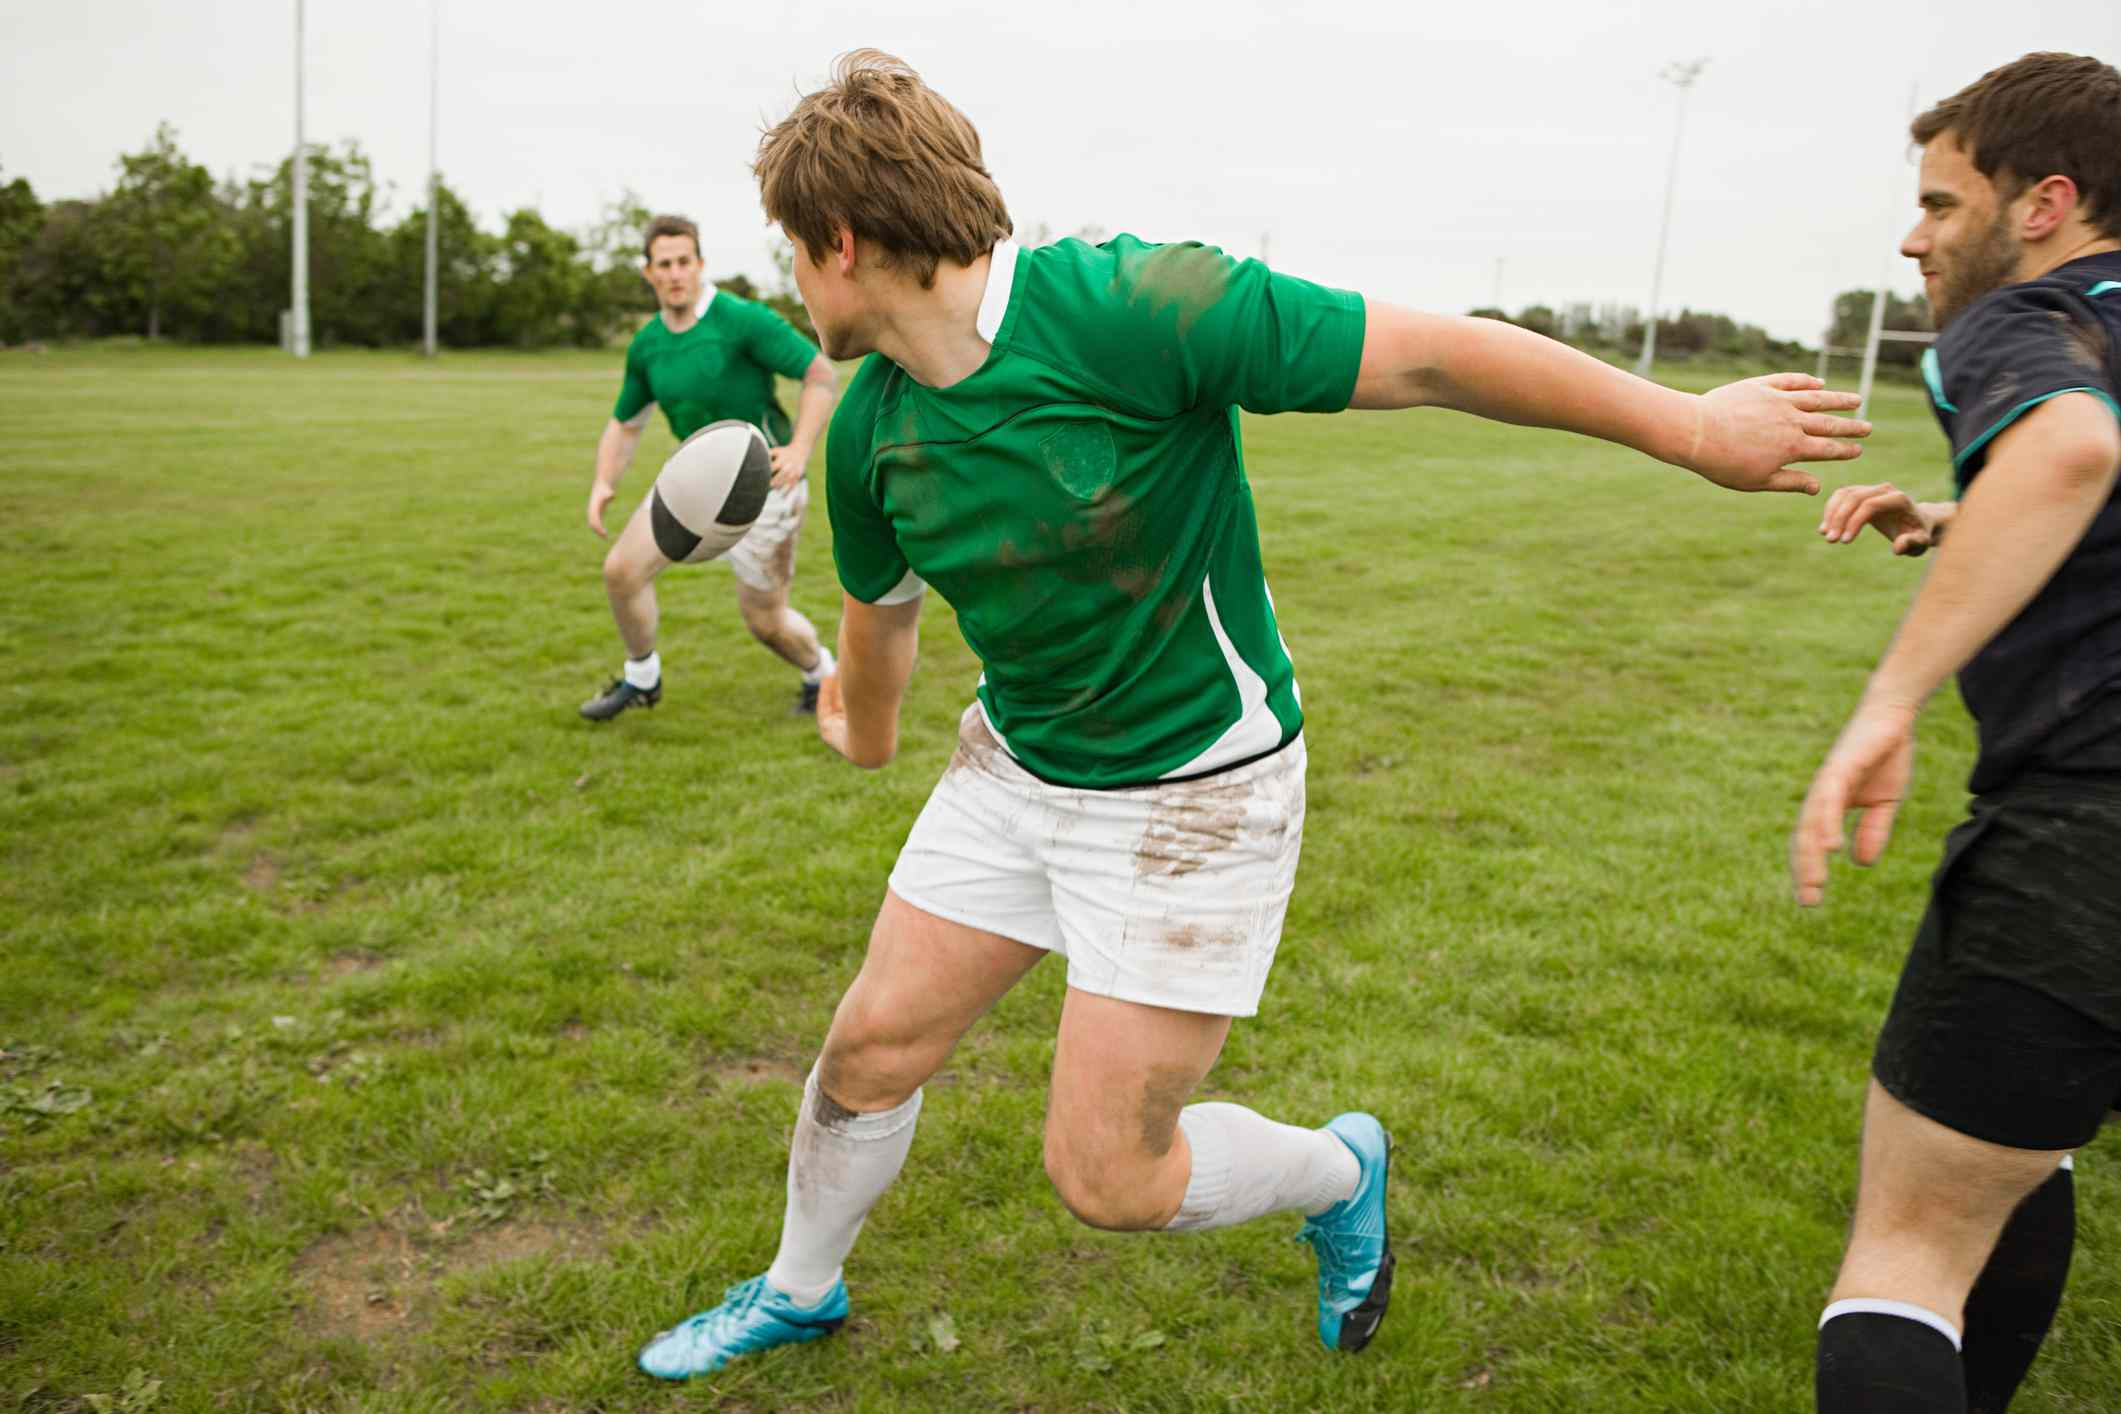 limerick rugby players pass ball